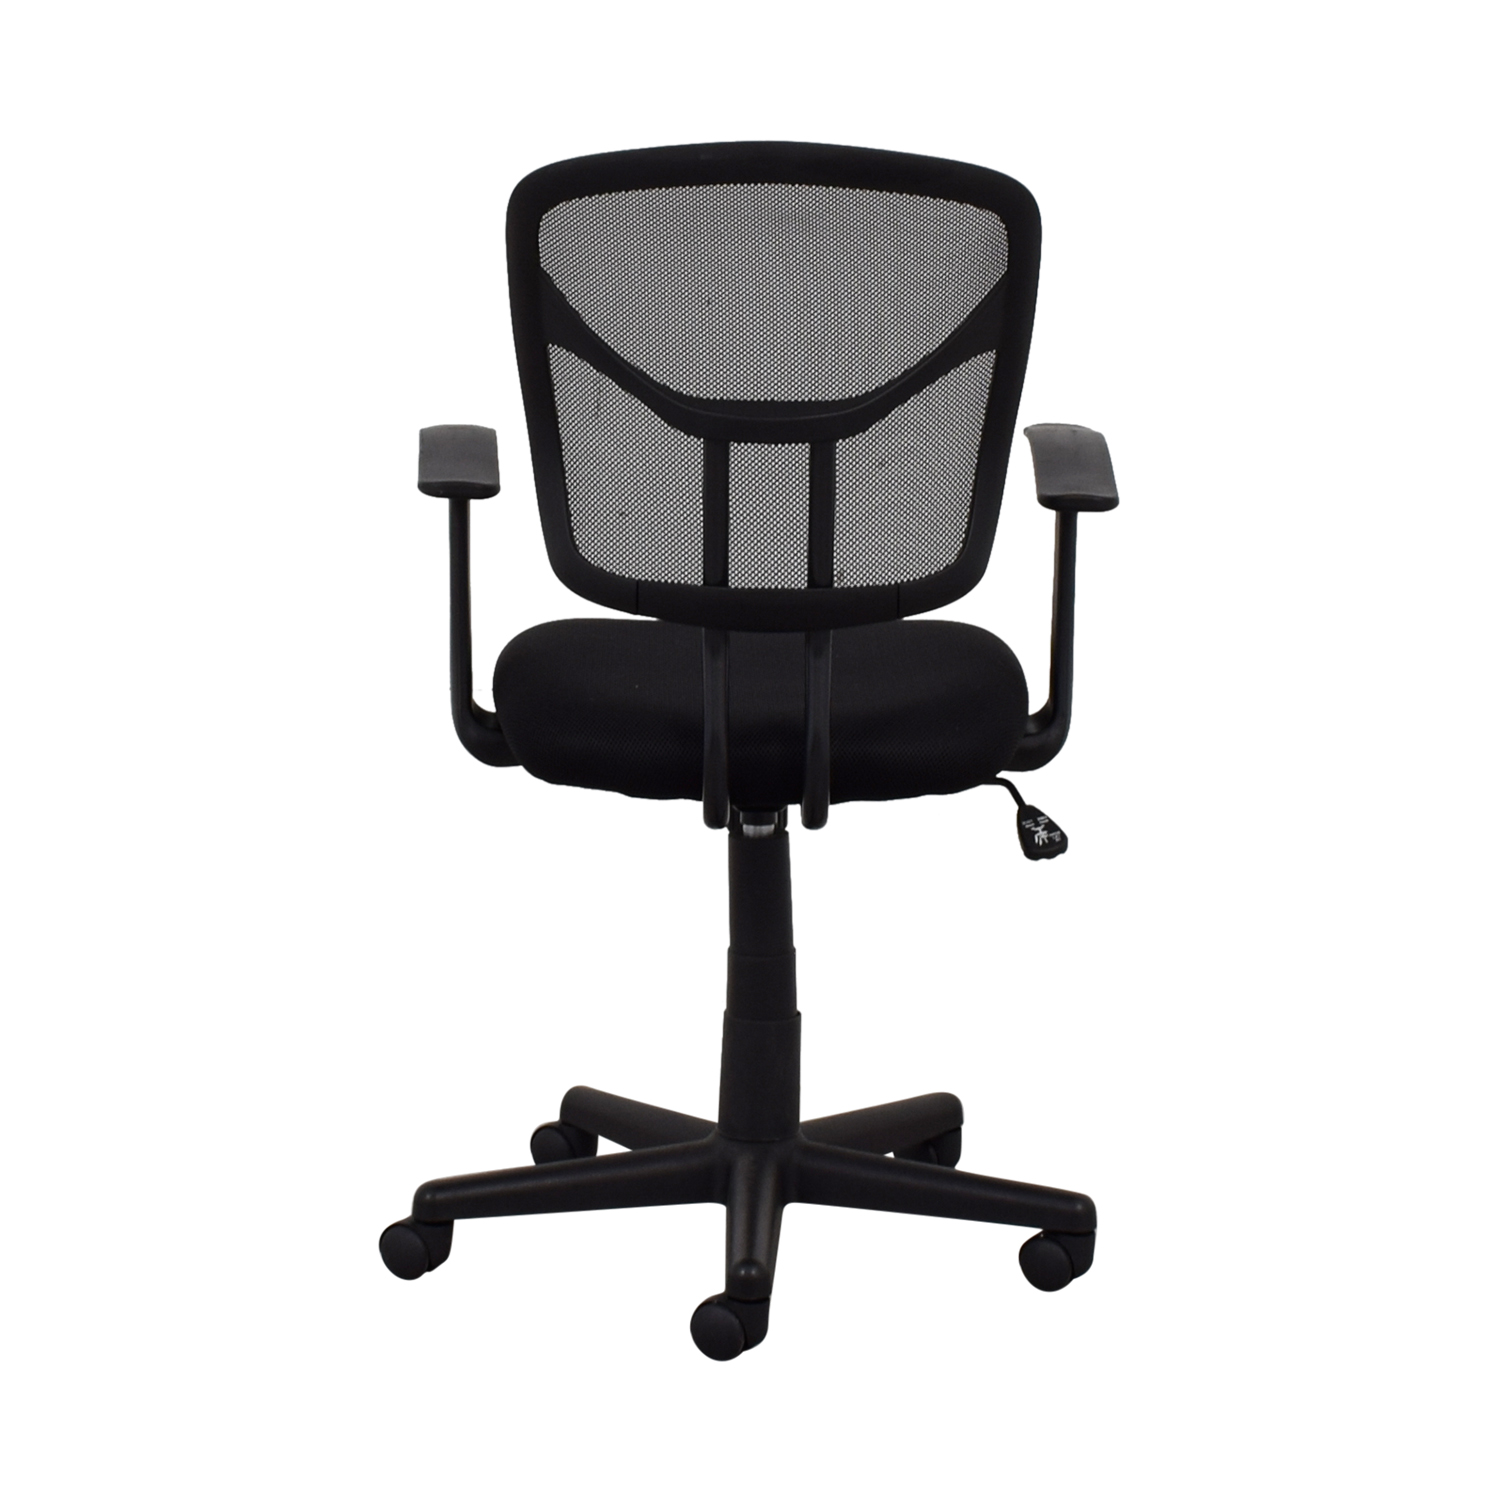 Black Rolling Office Chair for sale